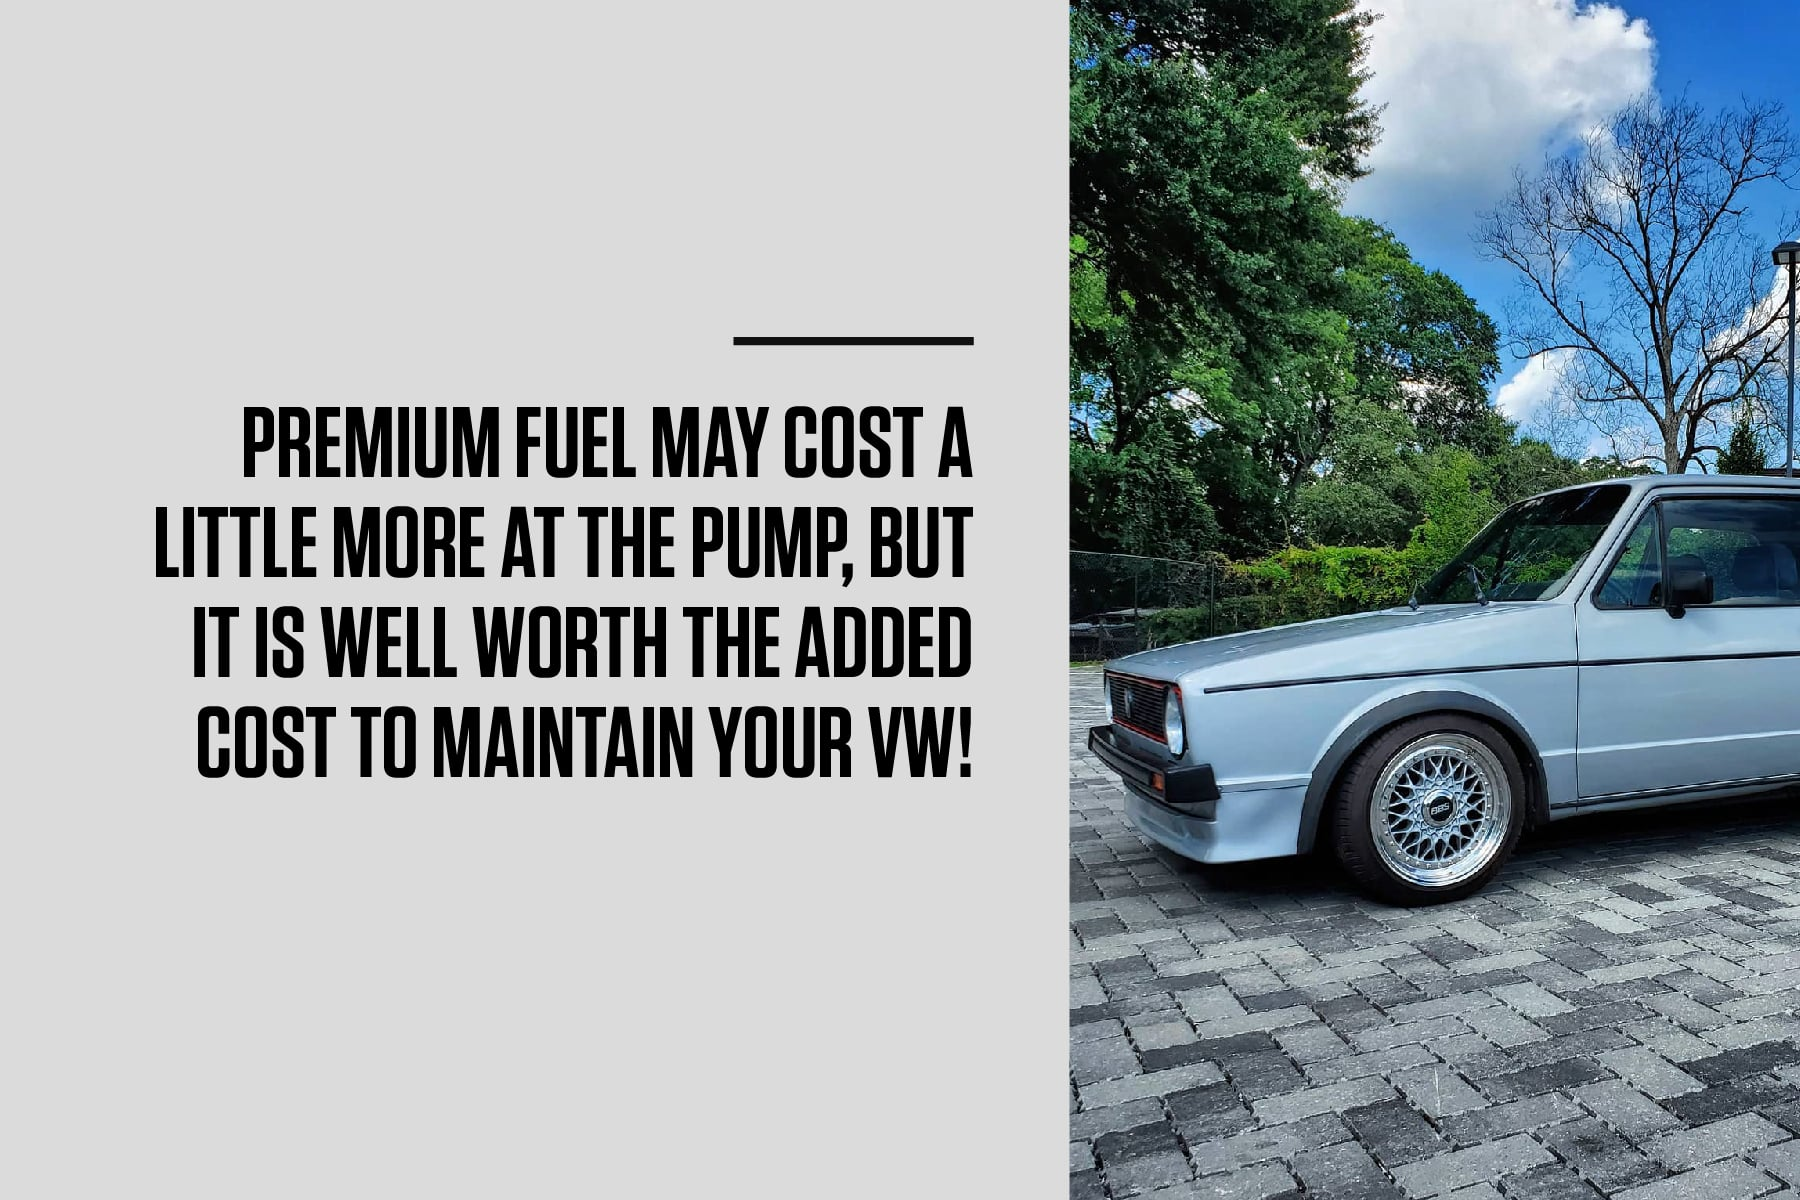 premium fuel helps keep your vw in good shape